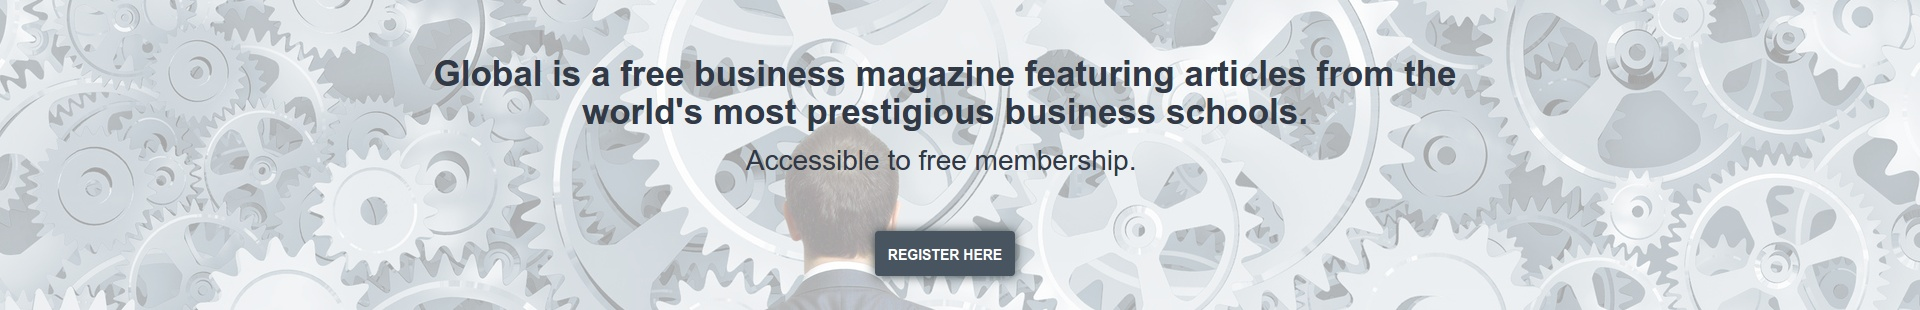 register for global free business magazine